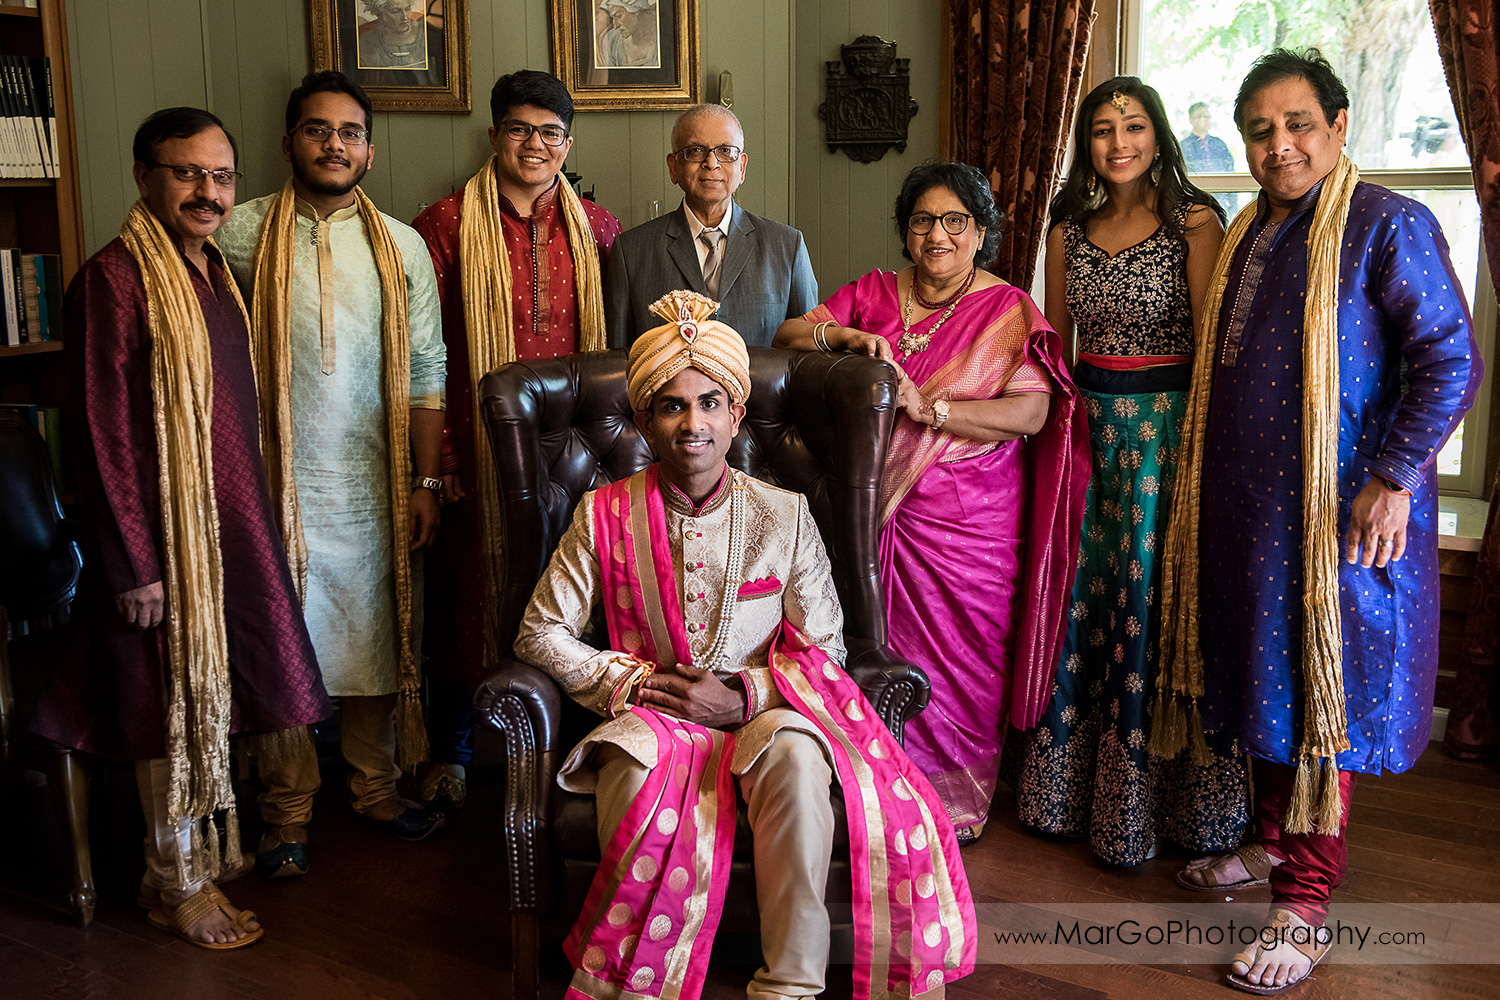 Indian family wedding portrait at Elliston Vineyards in Sunol